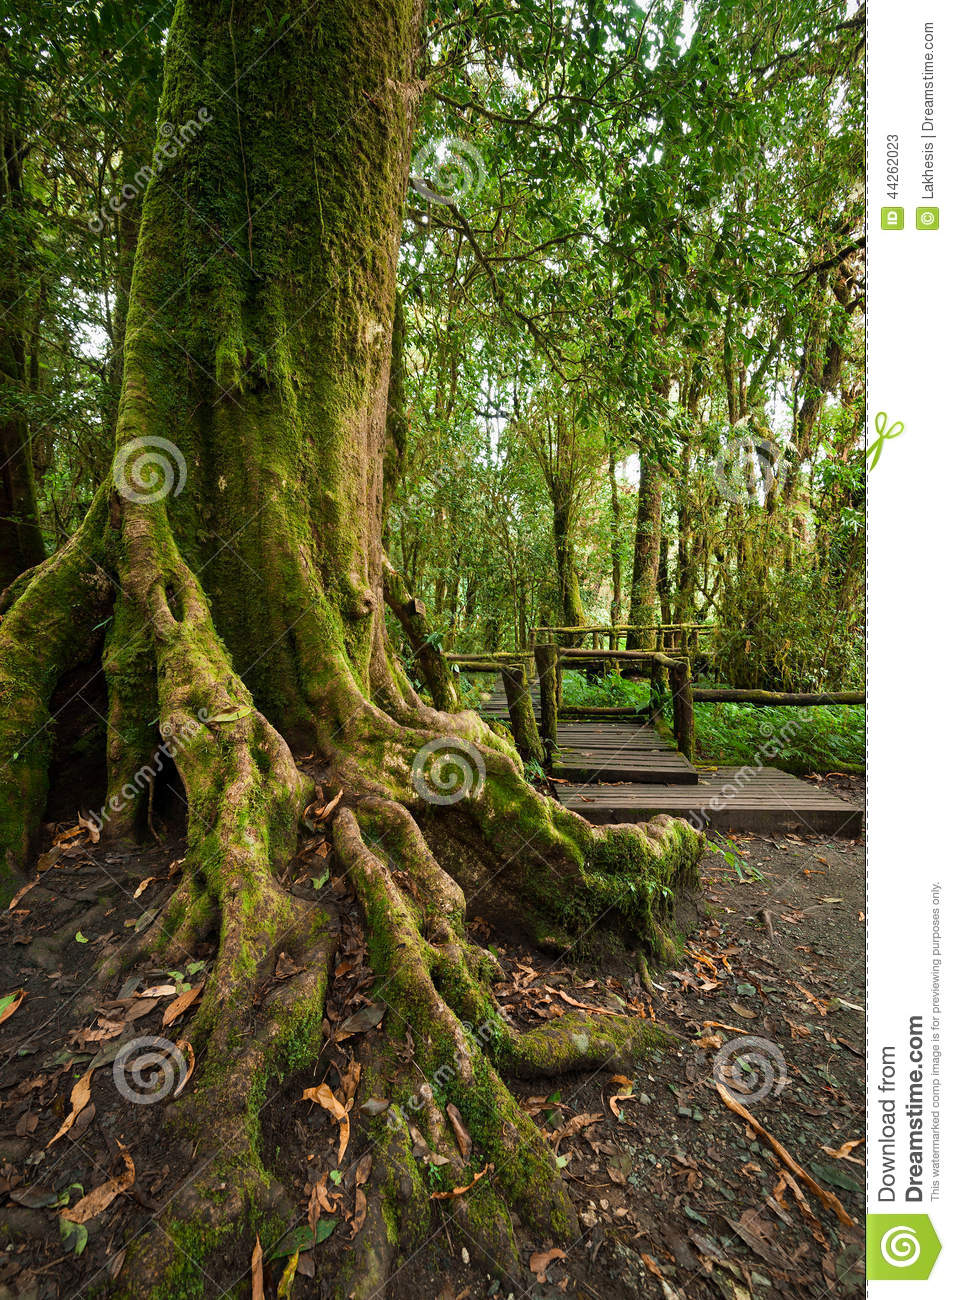 Backyard Jungle Tropical Landscapes : Jungle landscape Outdoor park with big tree roots at tropical rain